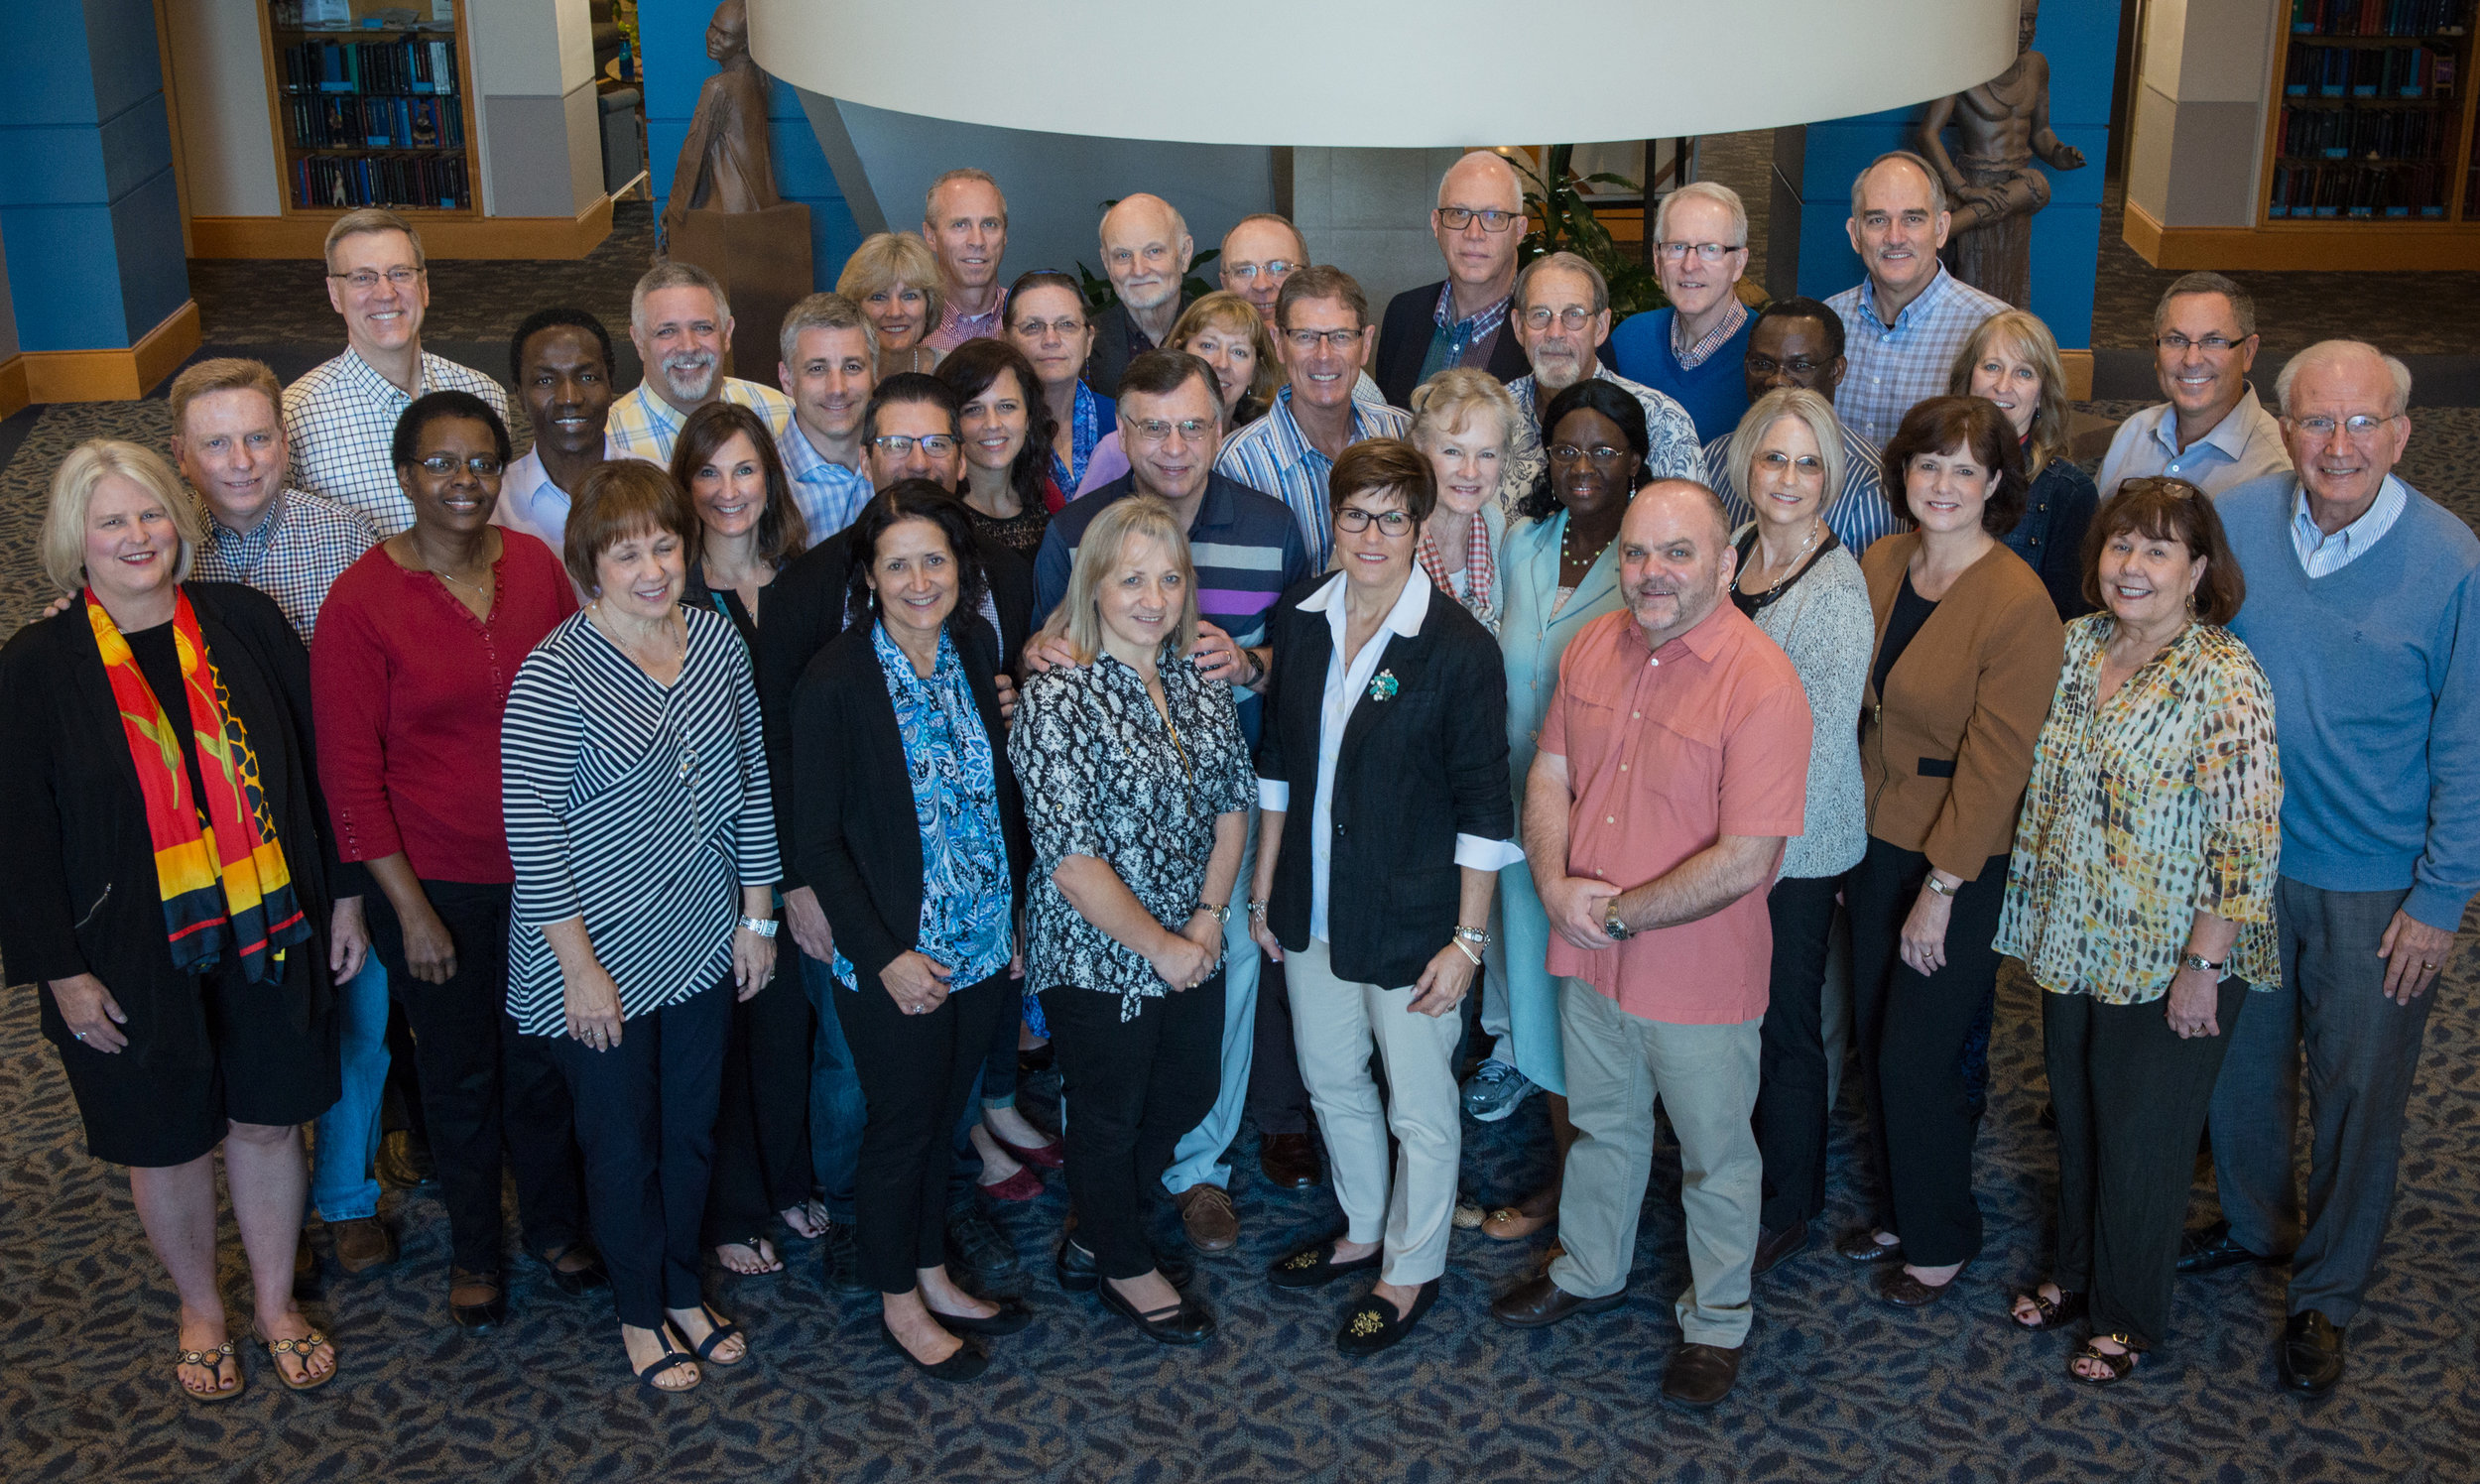 2016 Mission CEOs at Wycliffe USA